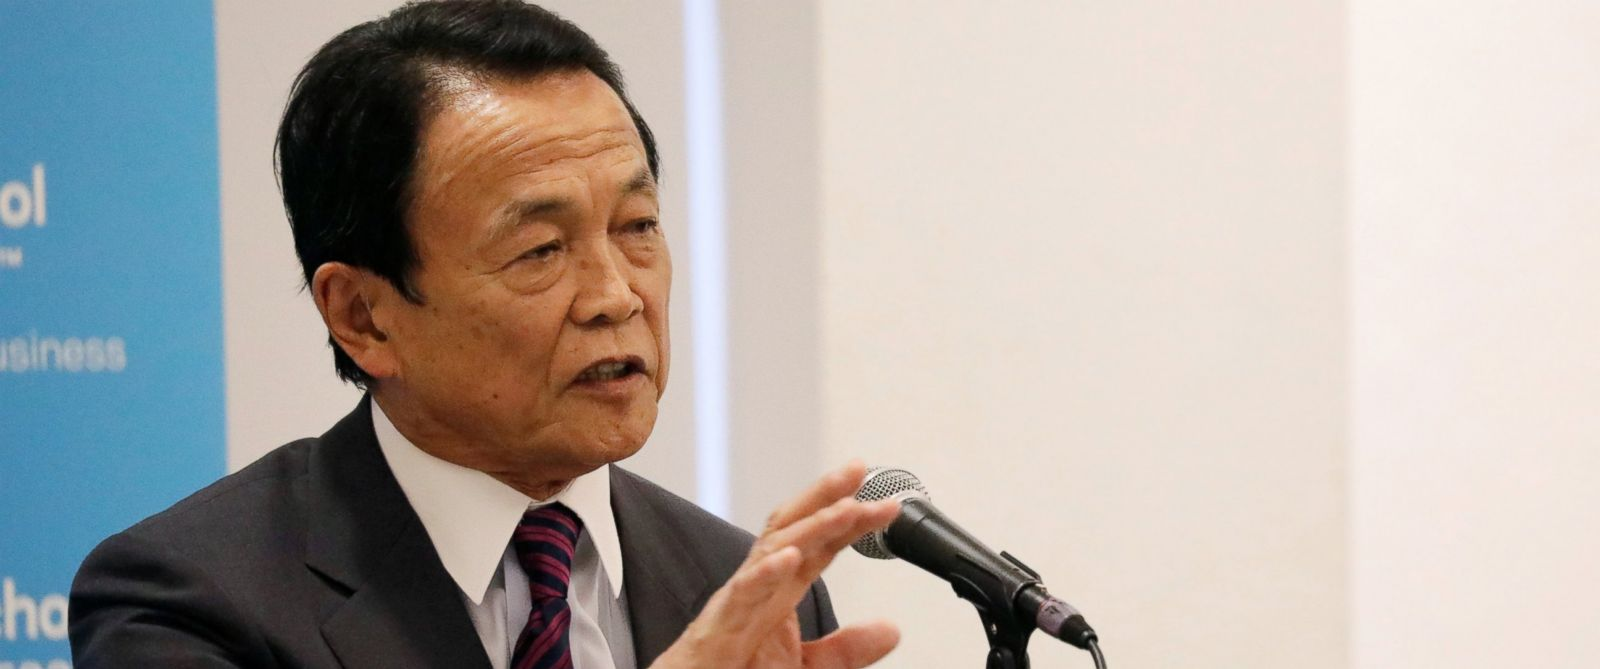 PHOTO: Japanese Finance Minister Taro Aso speaks at Columbia Business School in New York City, April 19, 2017.